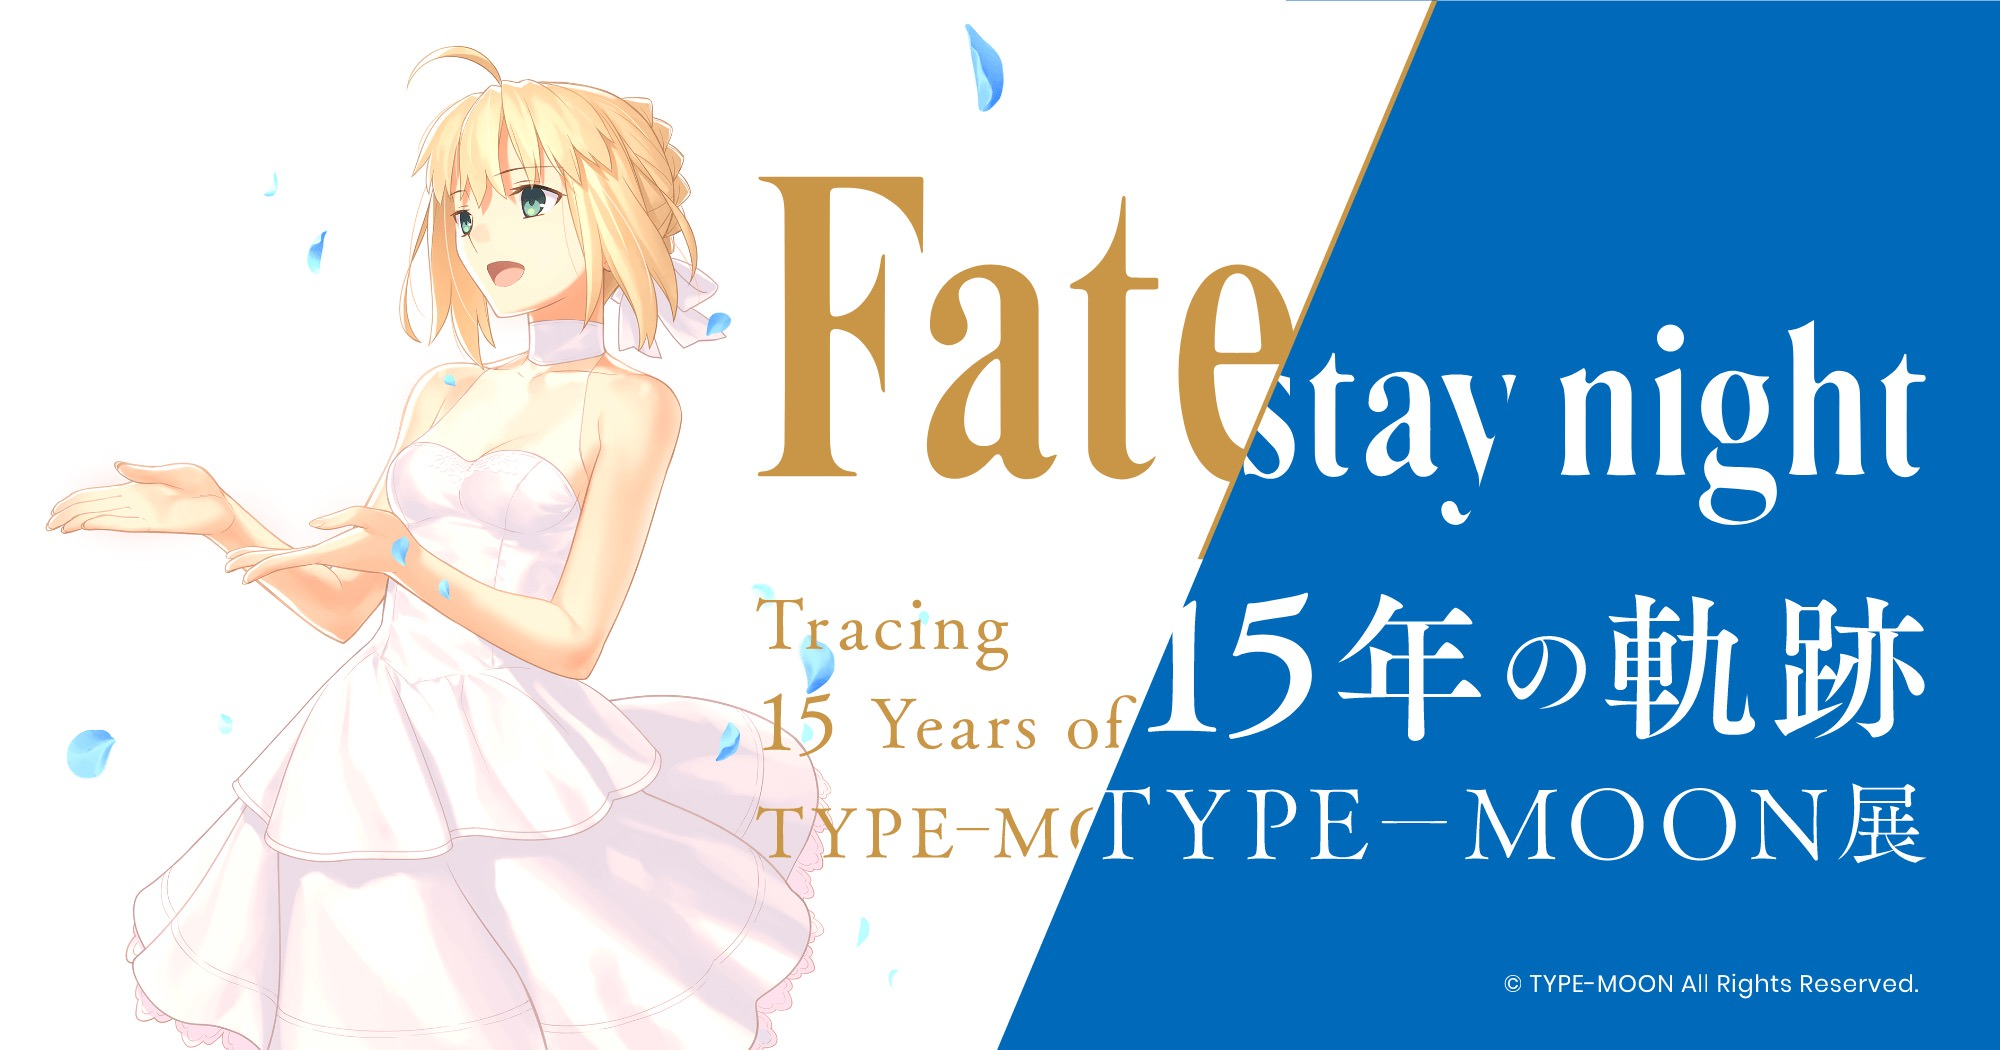 TYPE-MOON展 Fate/stay night -15年の軌跡- in 六本木 12.20-4.5 開催!!